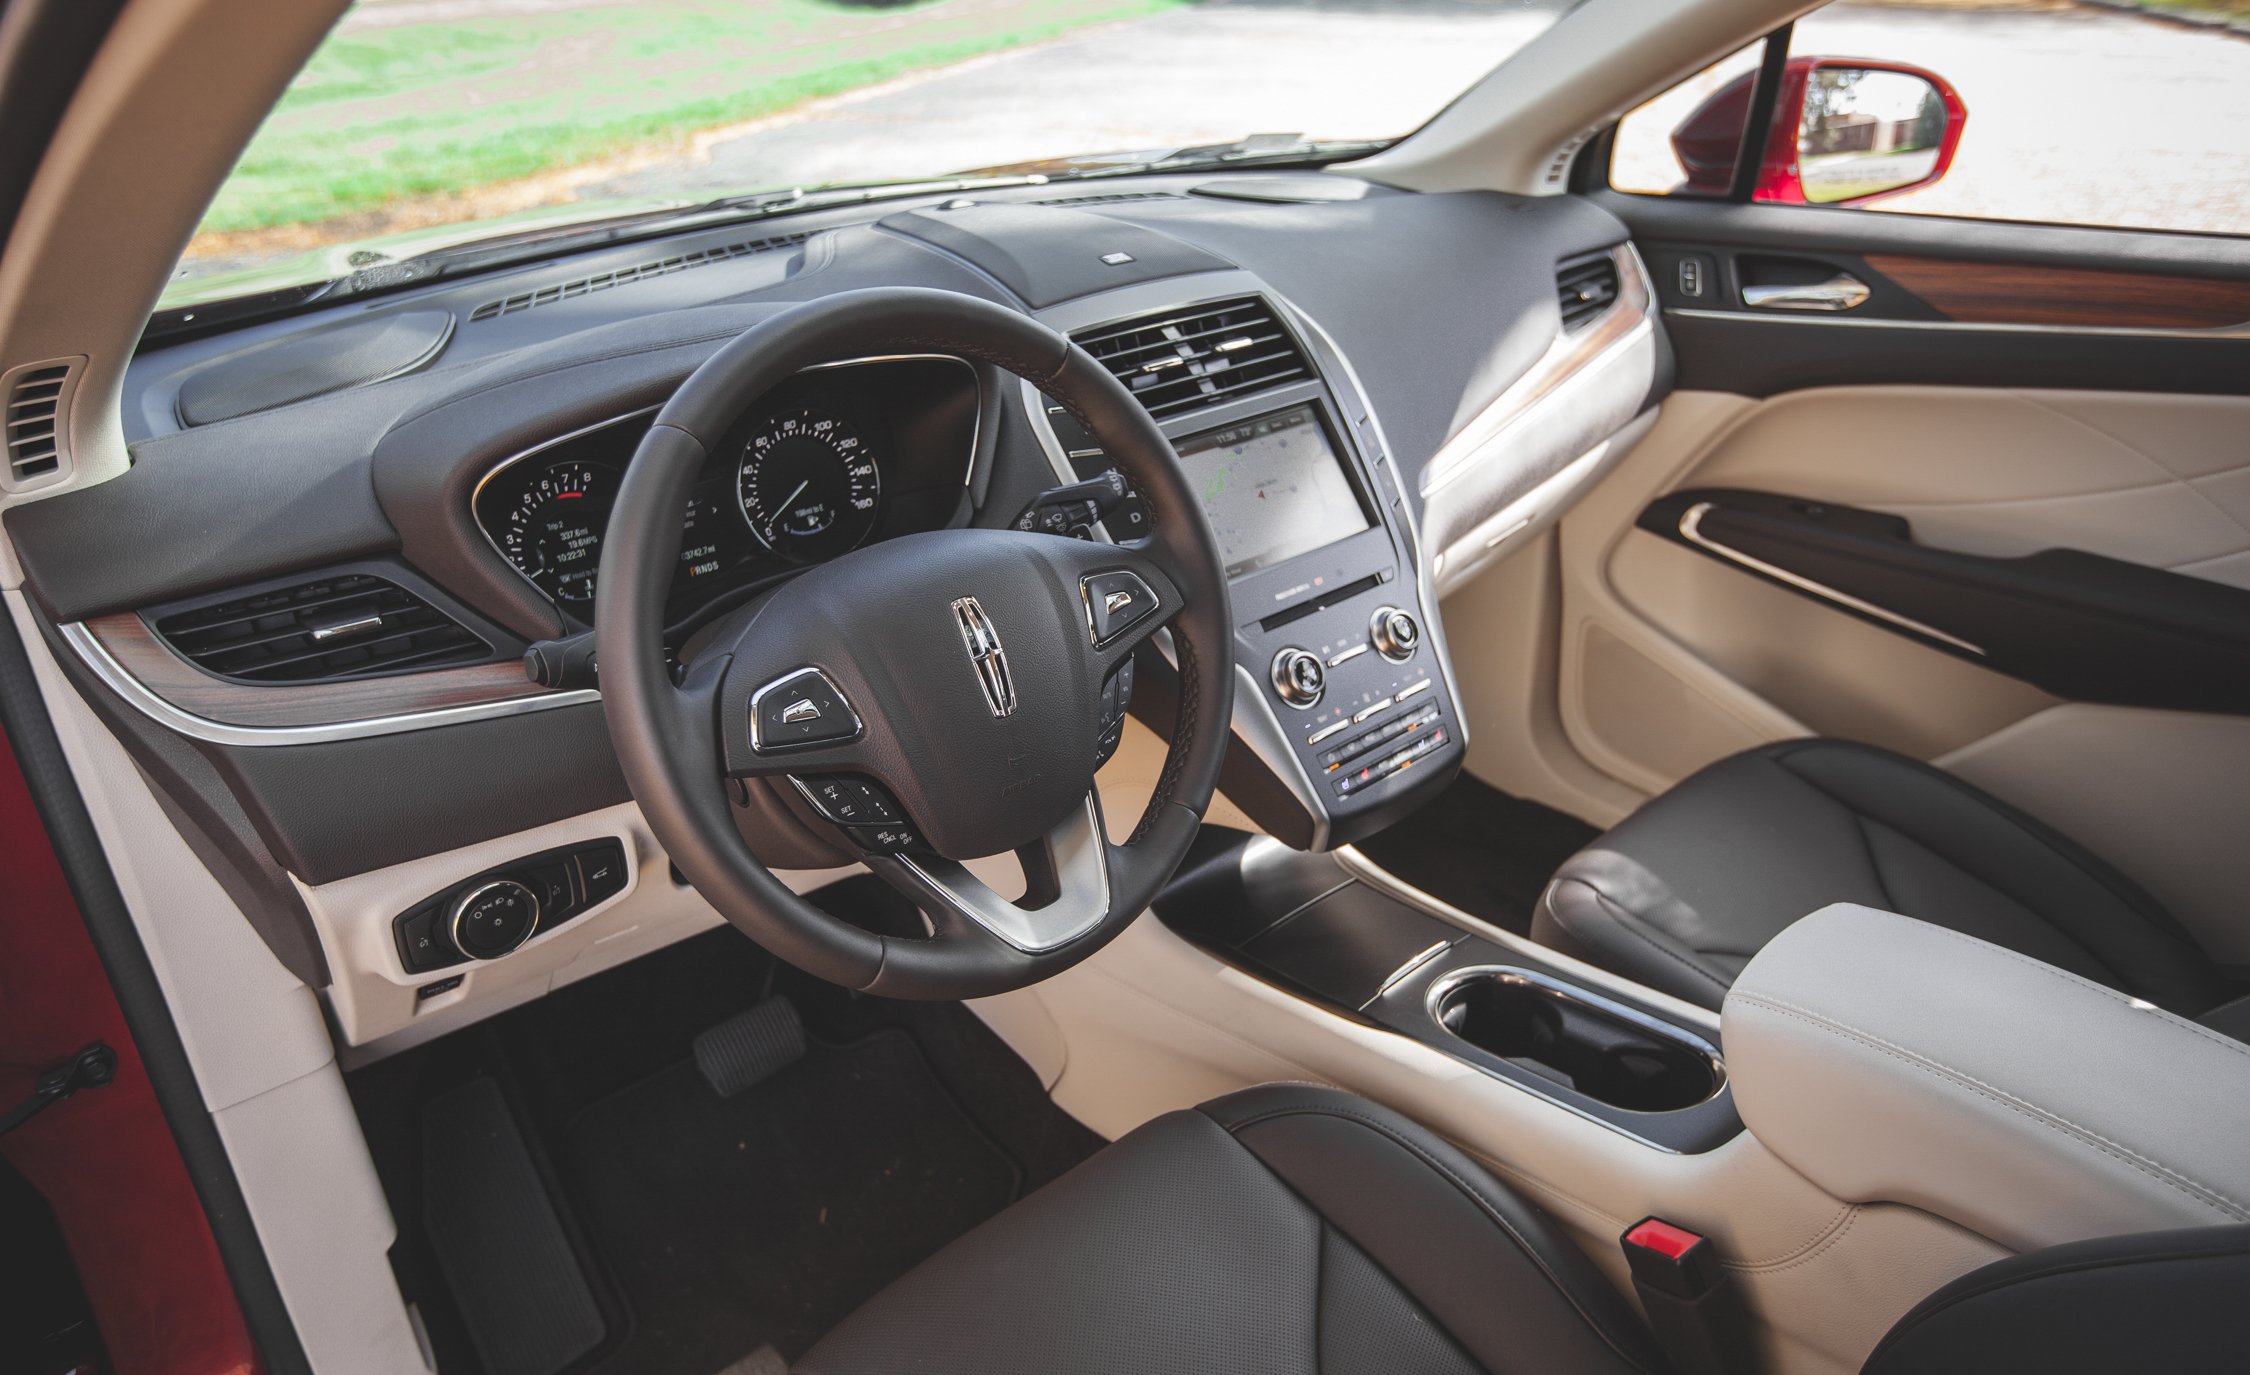 2015 Lincoln MKC 2.3 EcoBoost AWD Cockpit